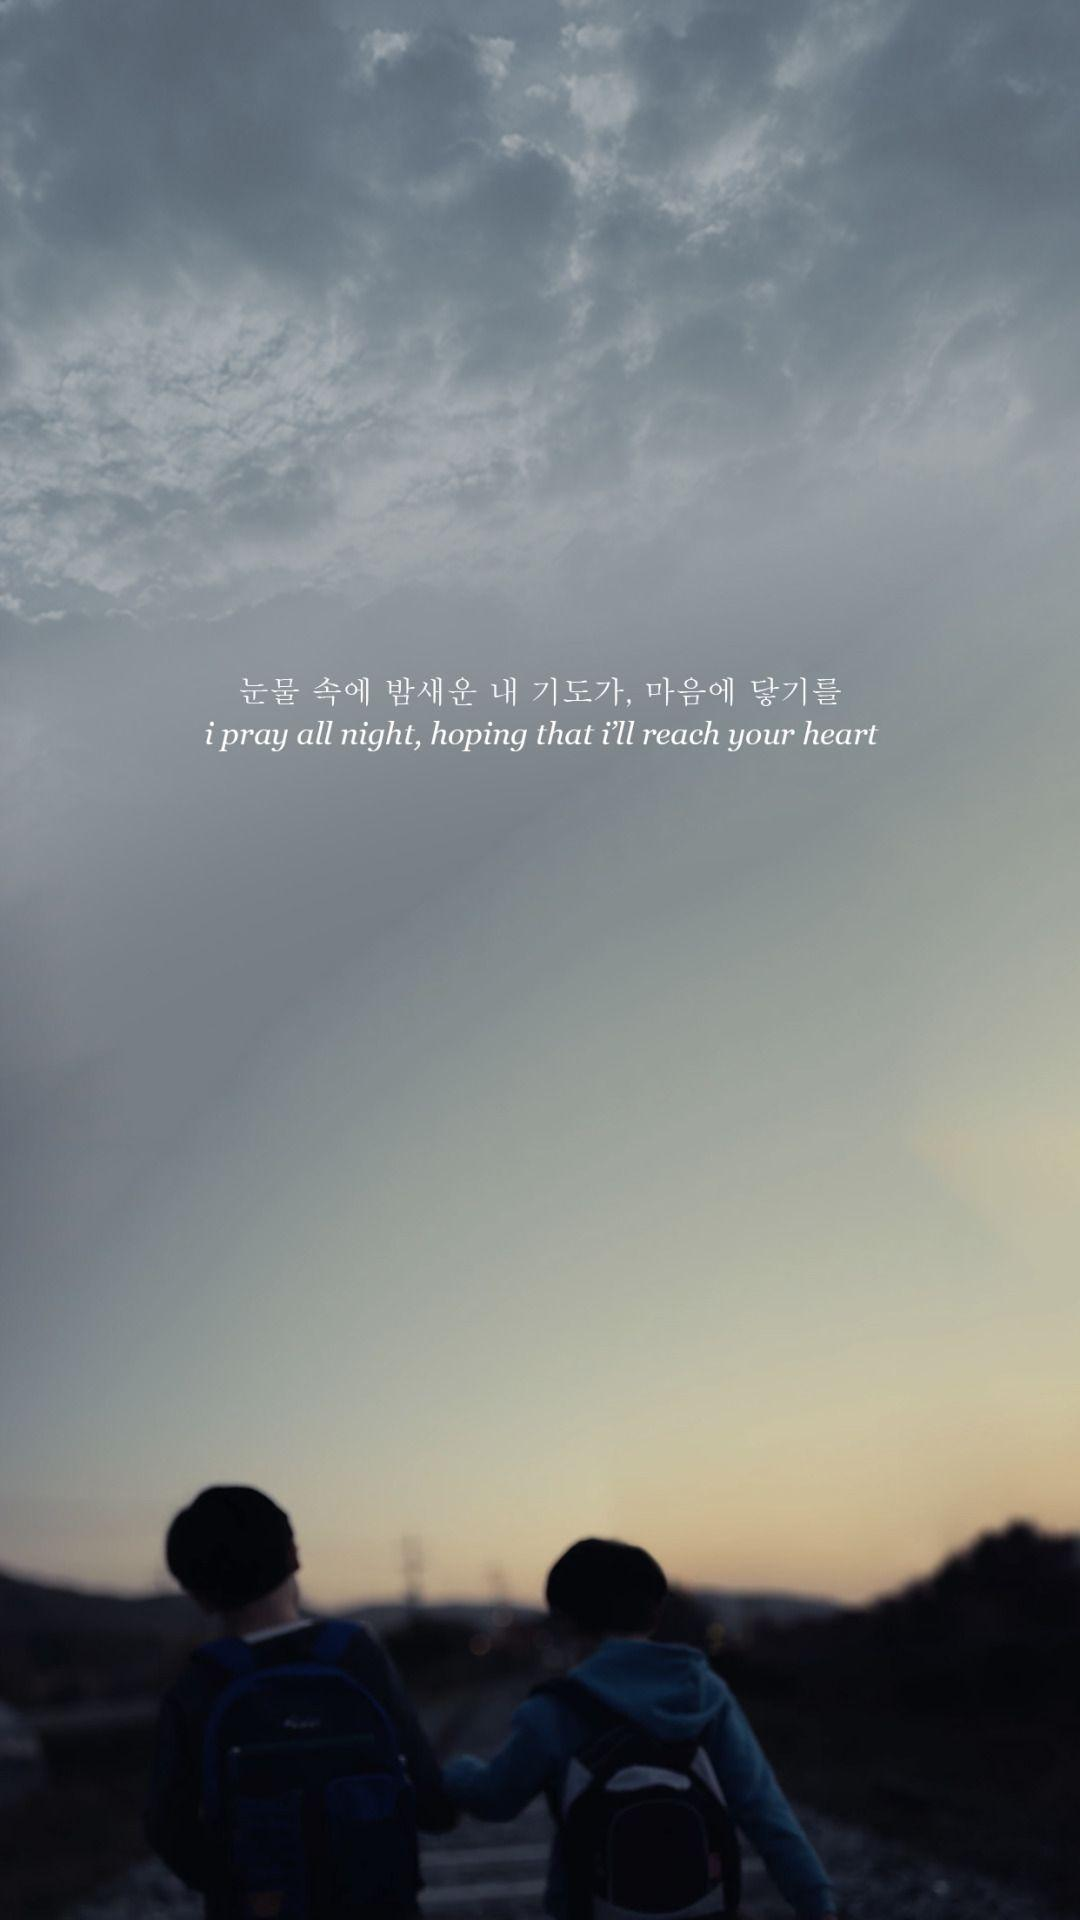 I Love Myself Quotes Wallpapers Wanna One 2018 Wallpapers Wallpaper Cave